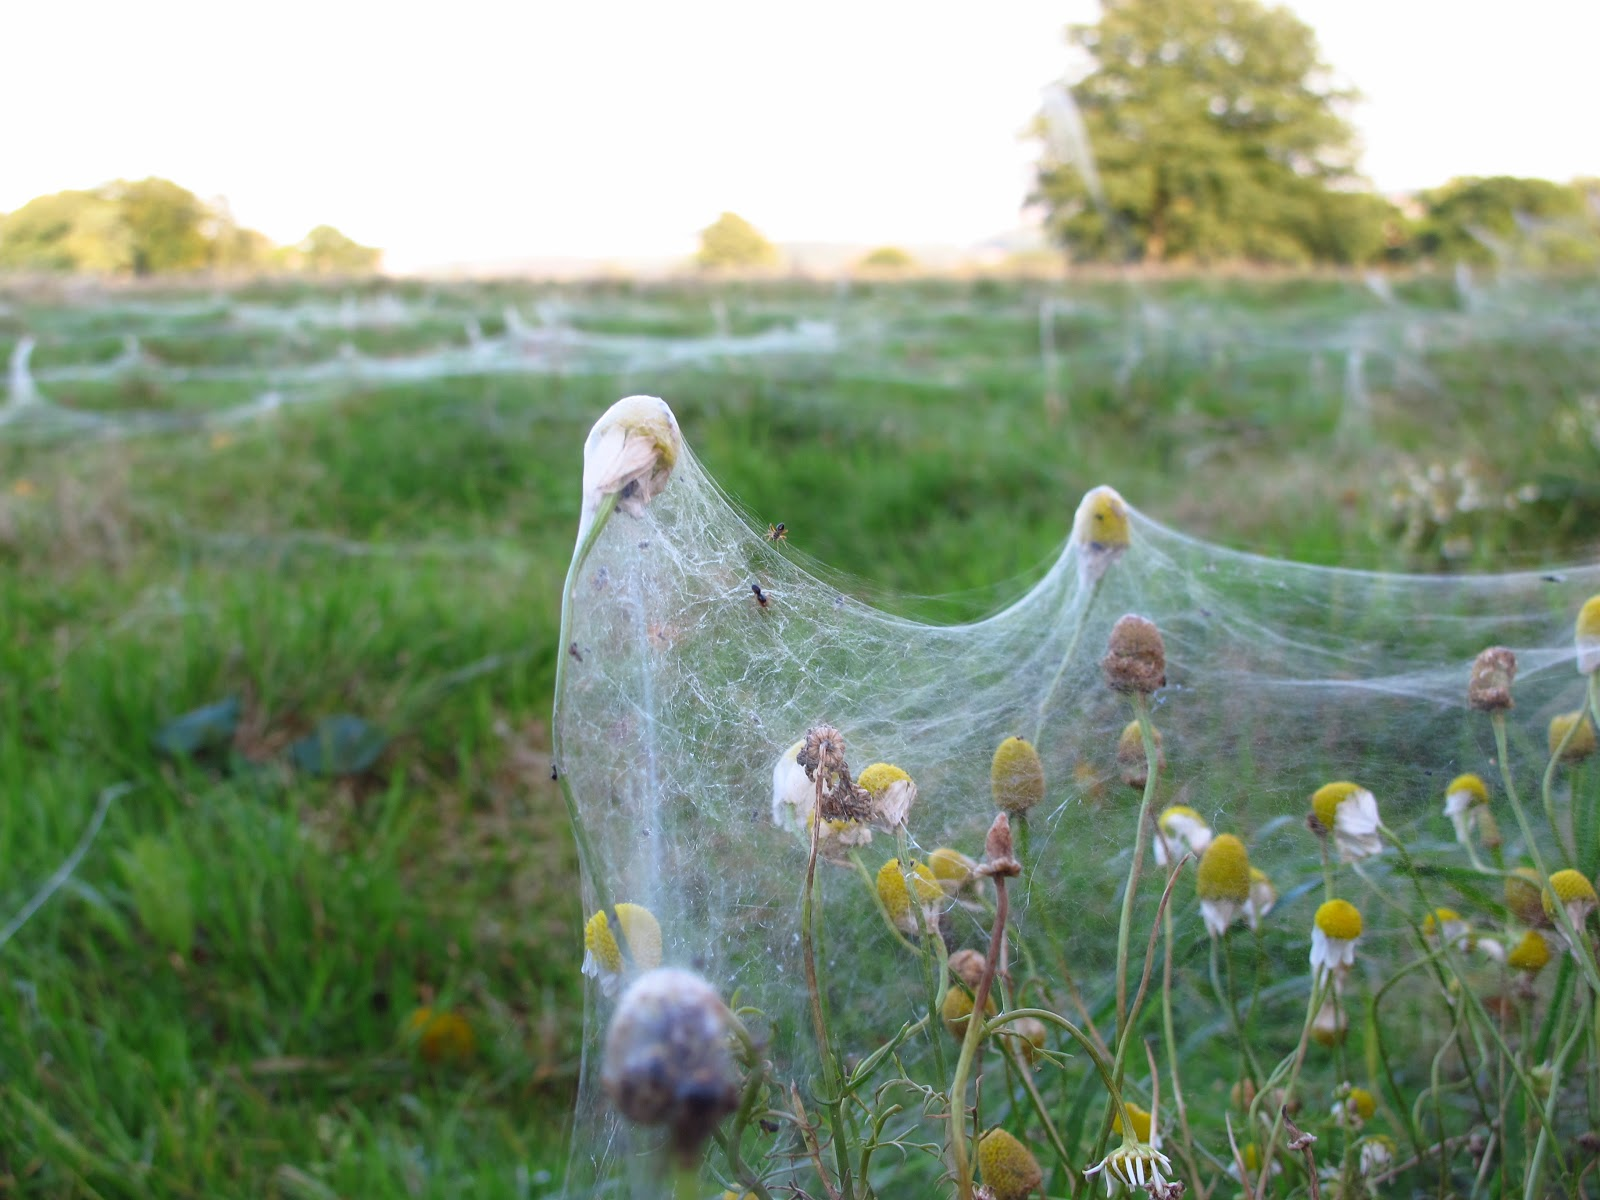 BugBlog: My spider year